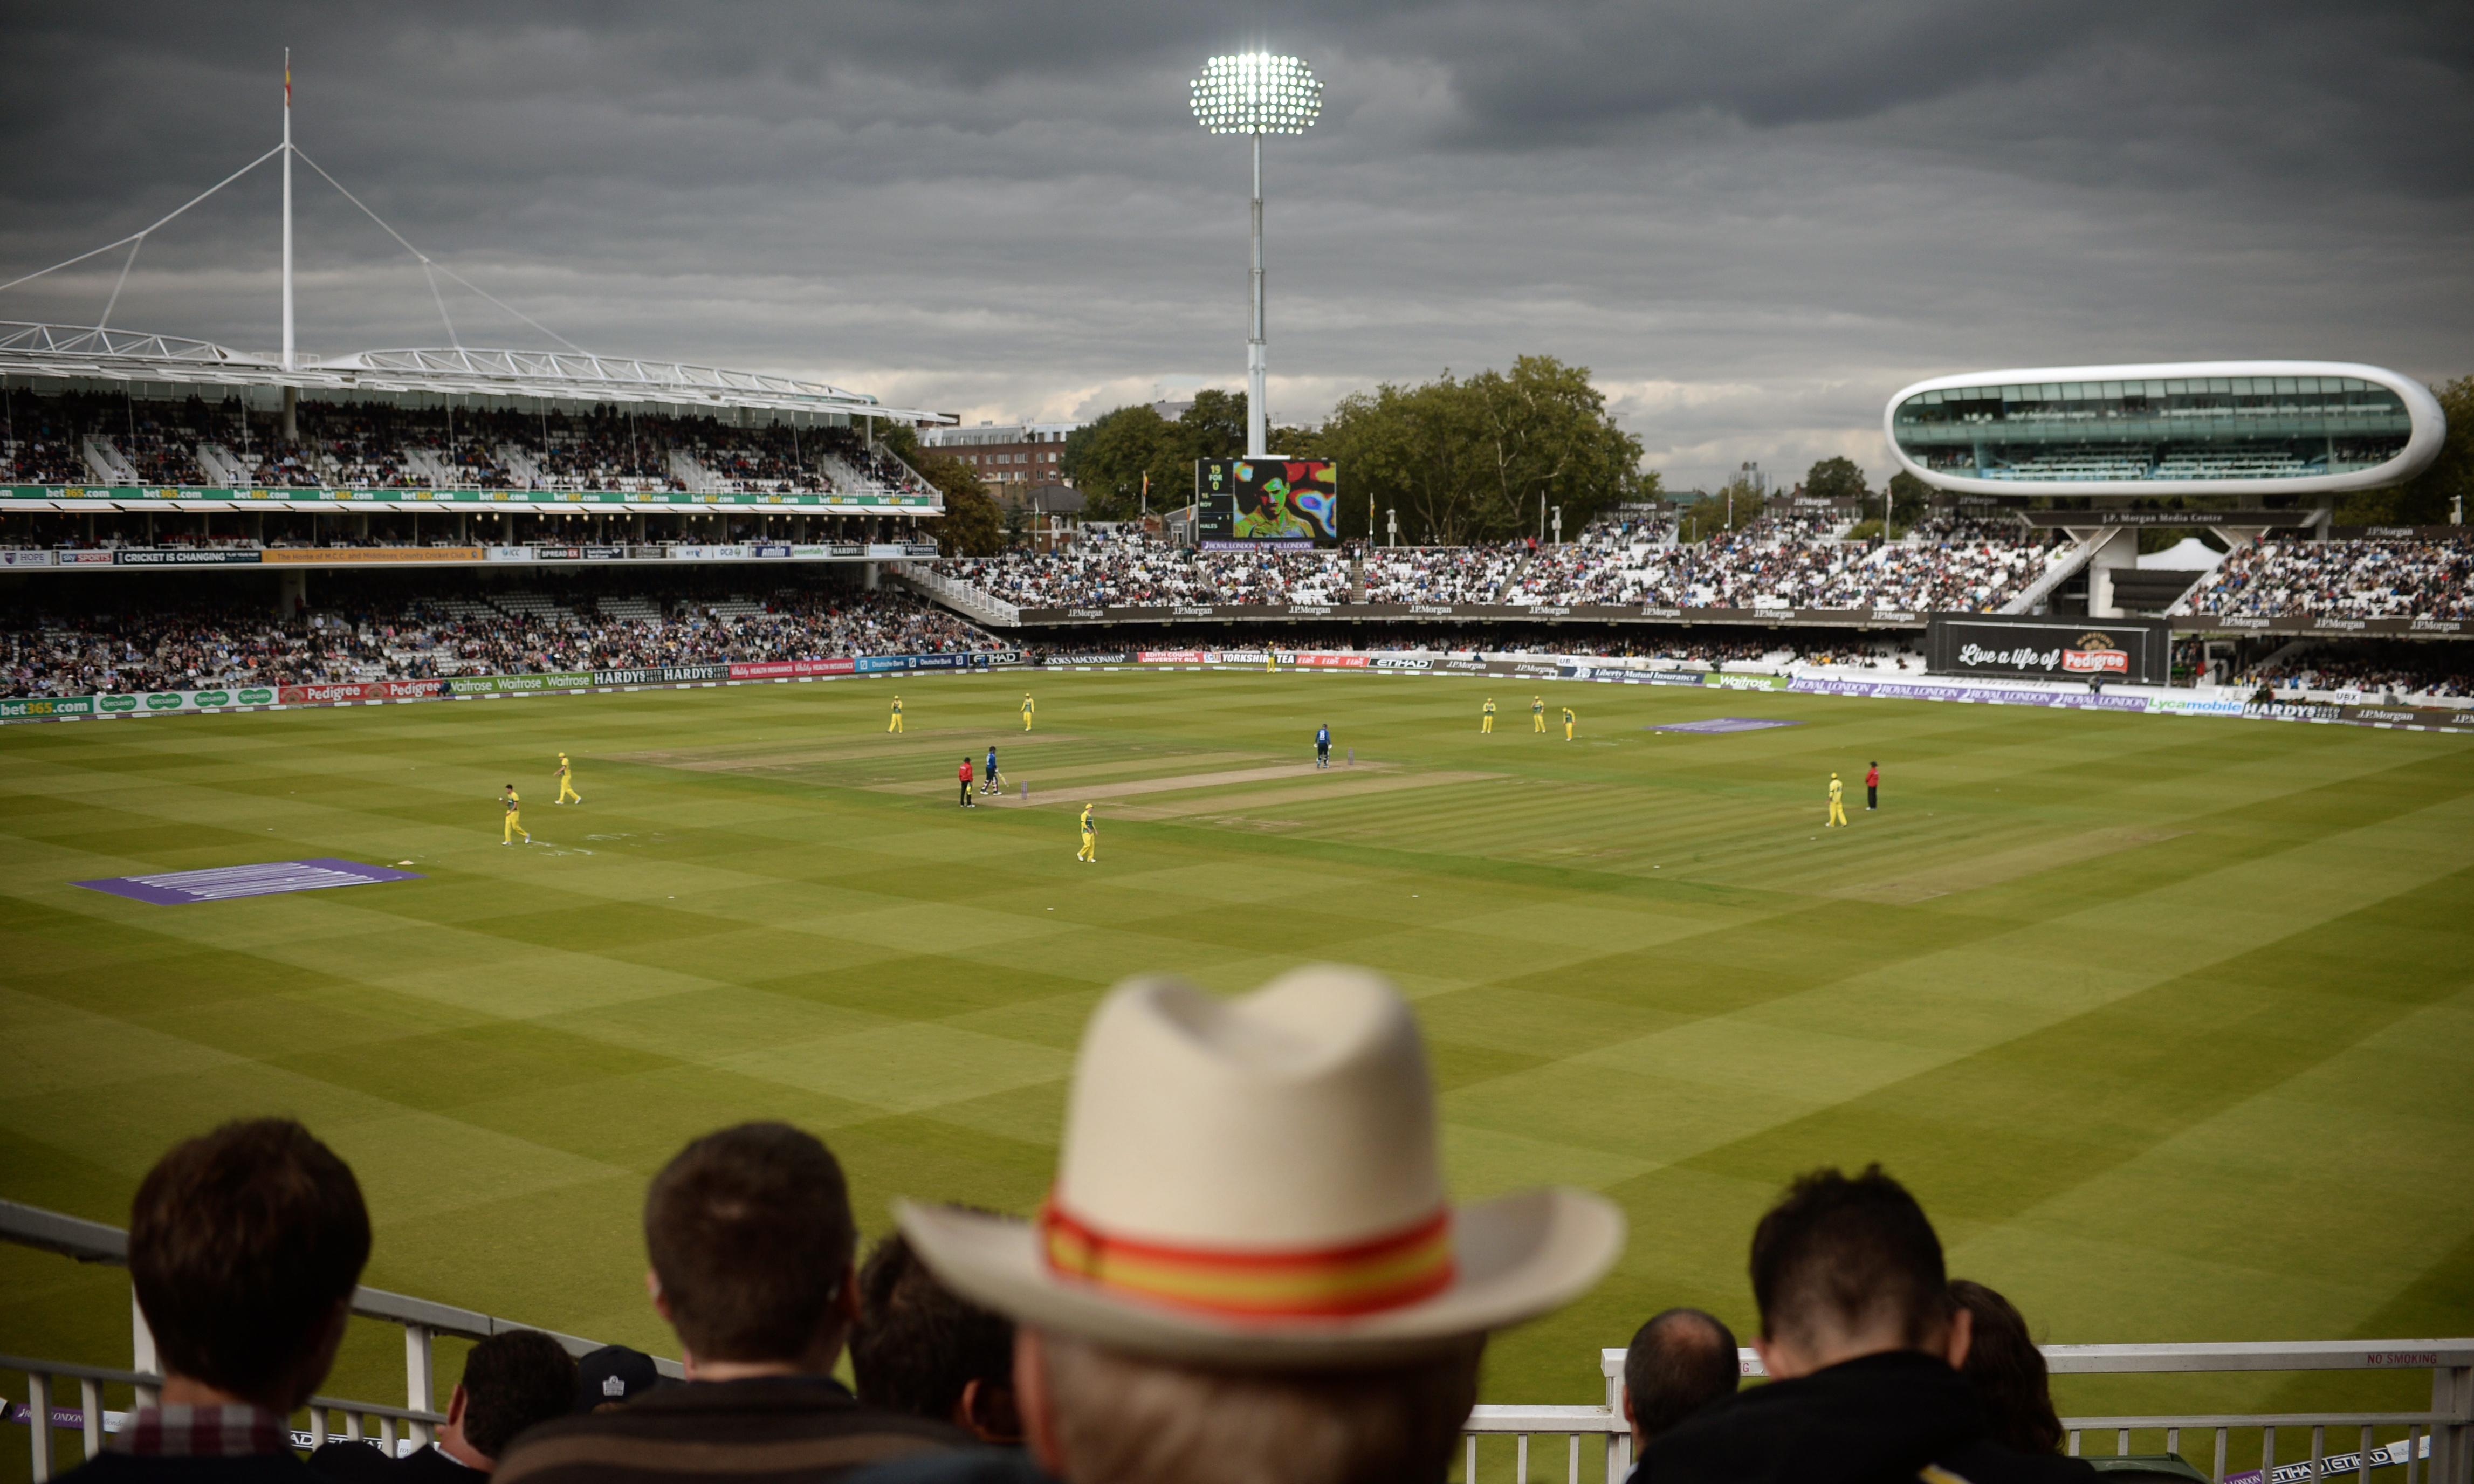 Cricket's coming home: World Cup offers England golden shot at rejuvenation